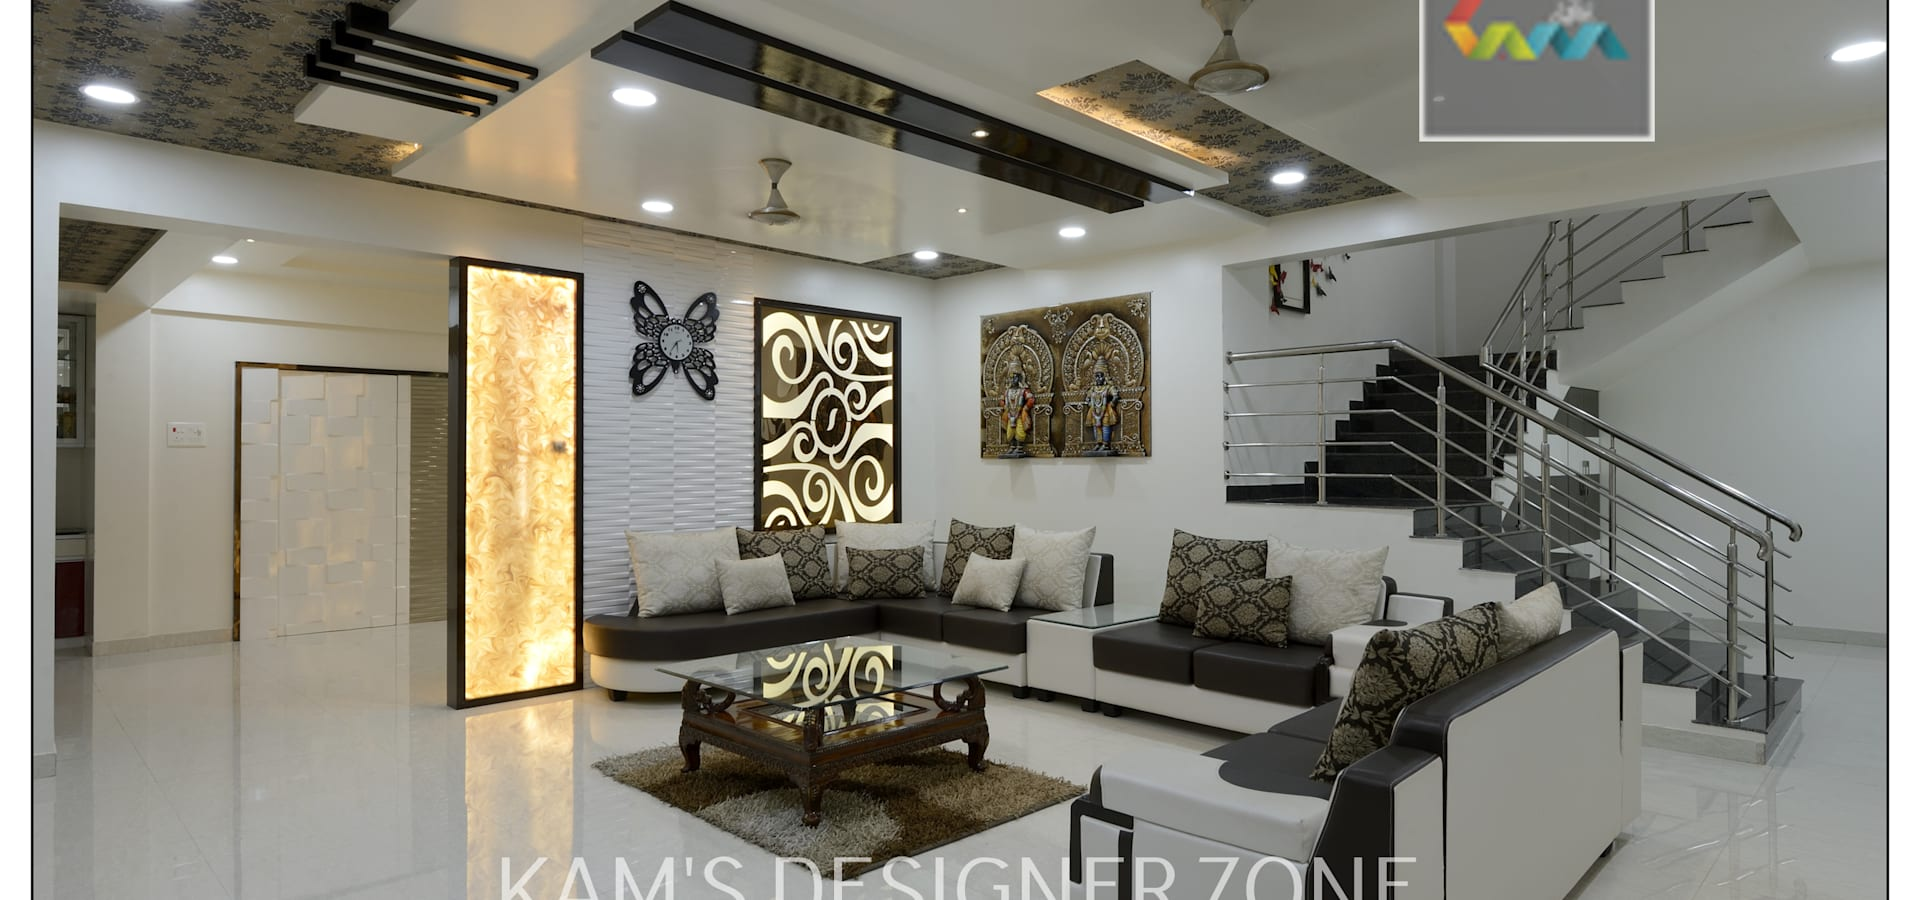 Kam39s designer zone interior designers decorators in for Interior design kitchen in pune